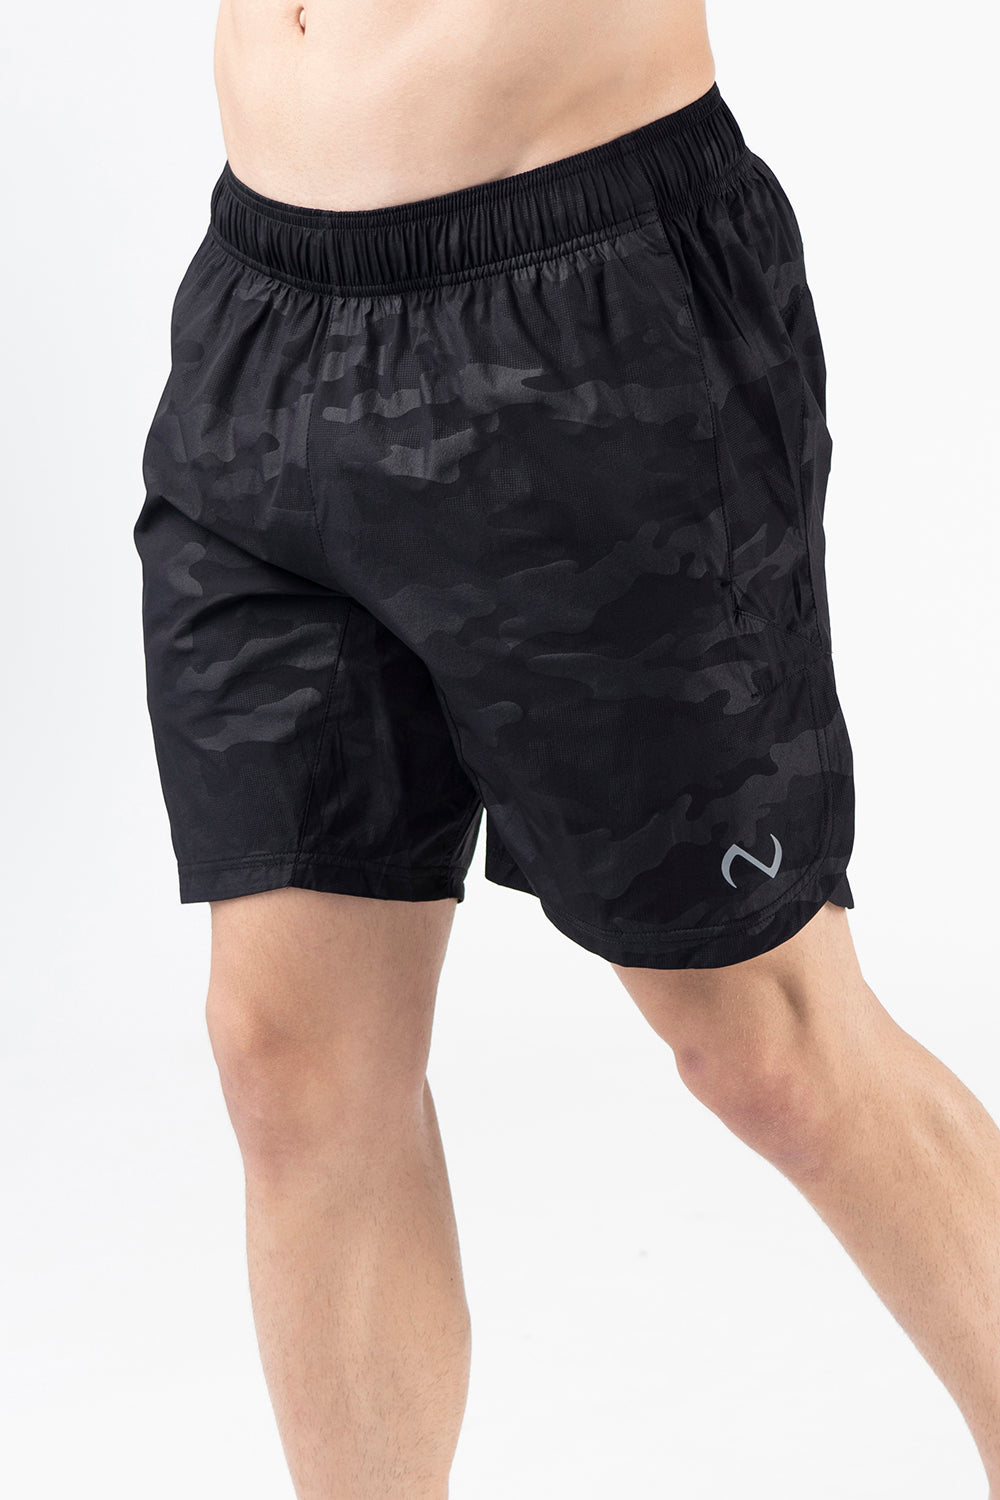 TLF Camo Gym Shorts - Shorts - TLF Apparel | Take Life Further